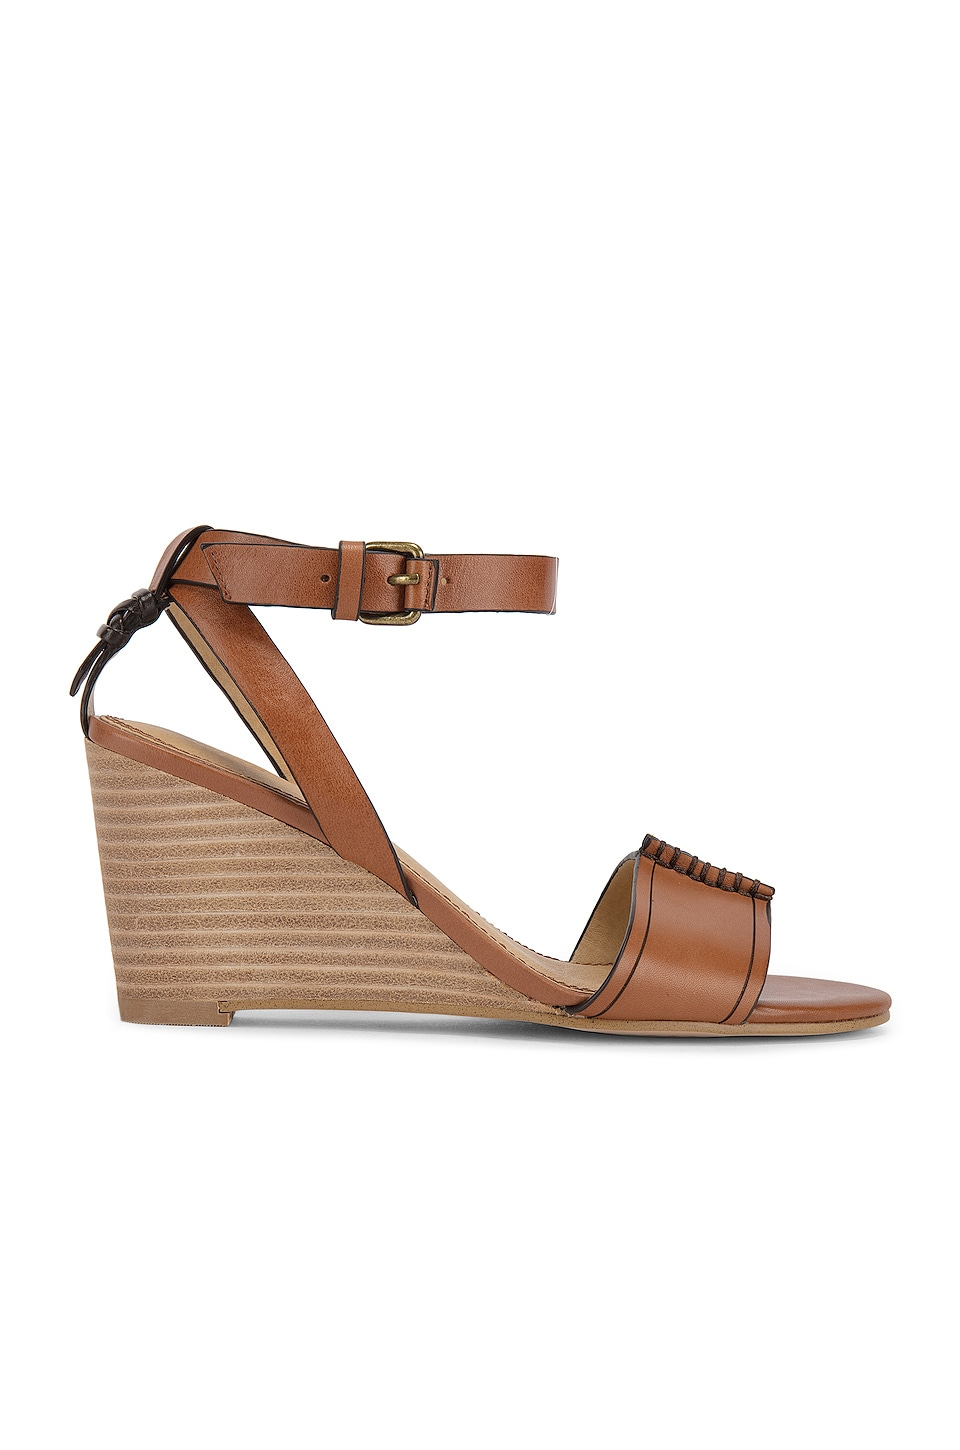 Splendid Tadeo Wedge in Brick